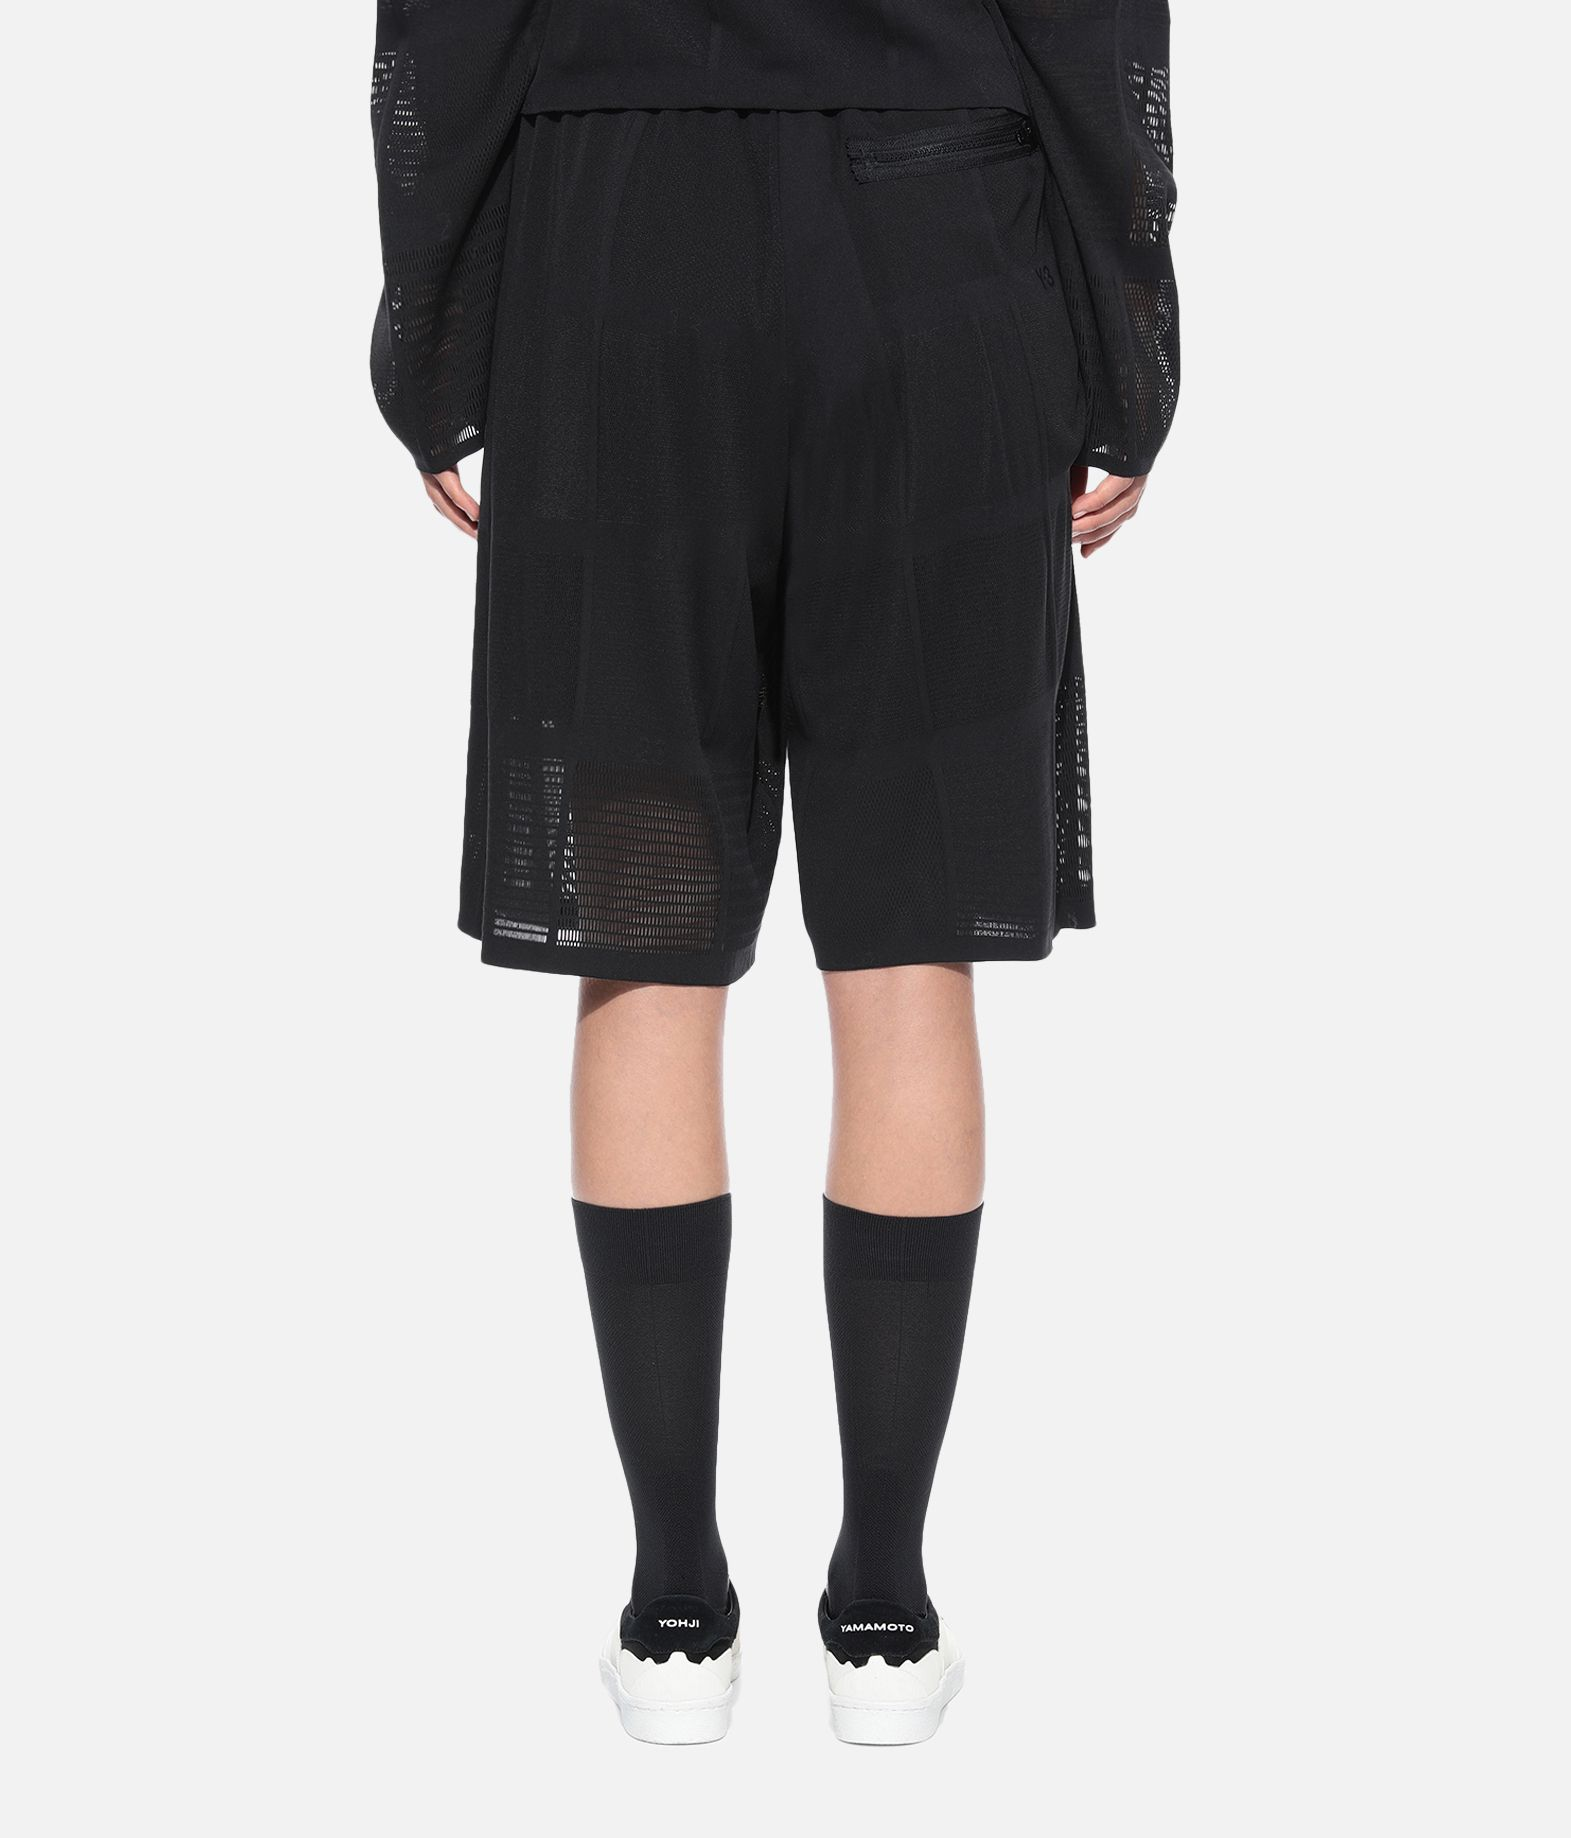 Y-3 Y-3 Patchwork Shorts Bermuda Woman d